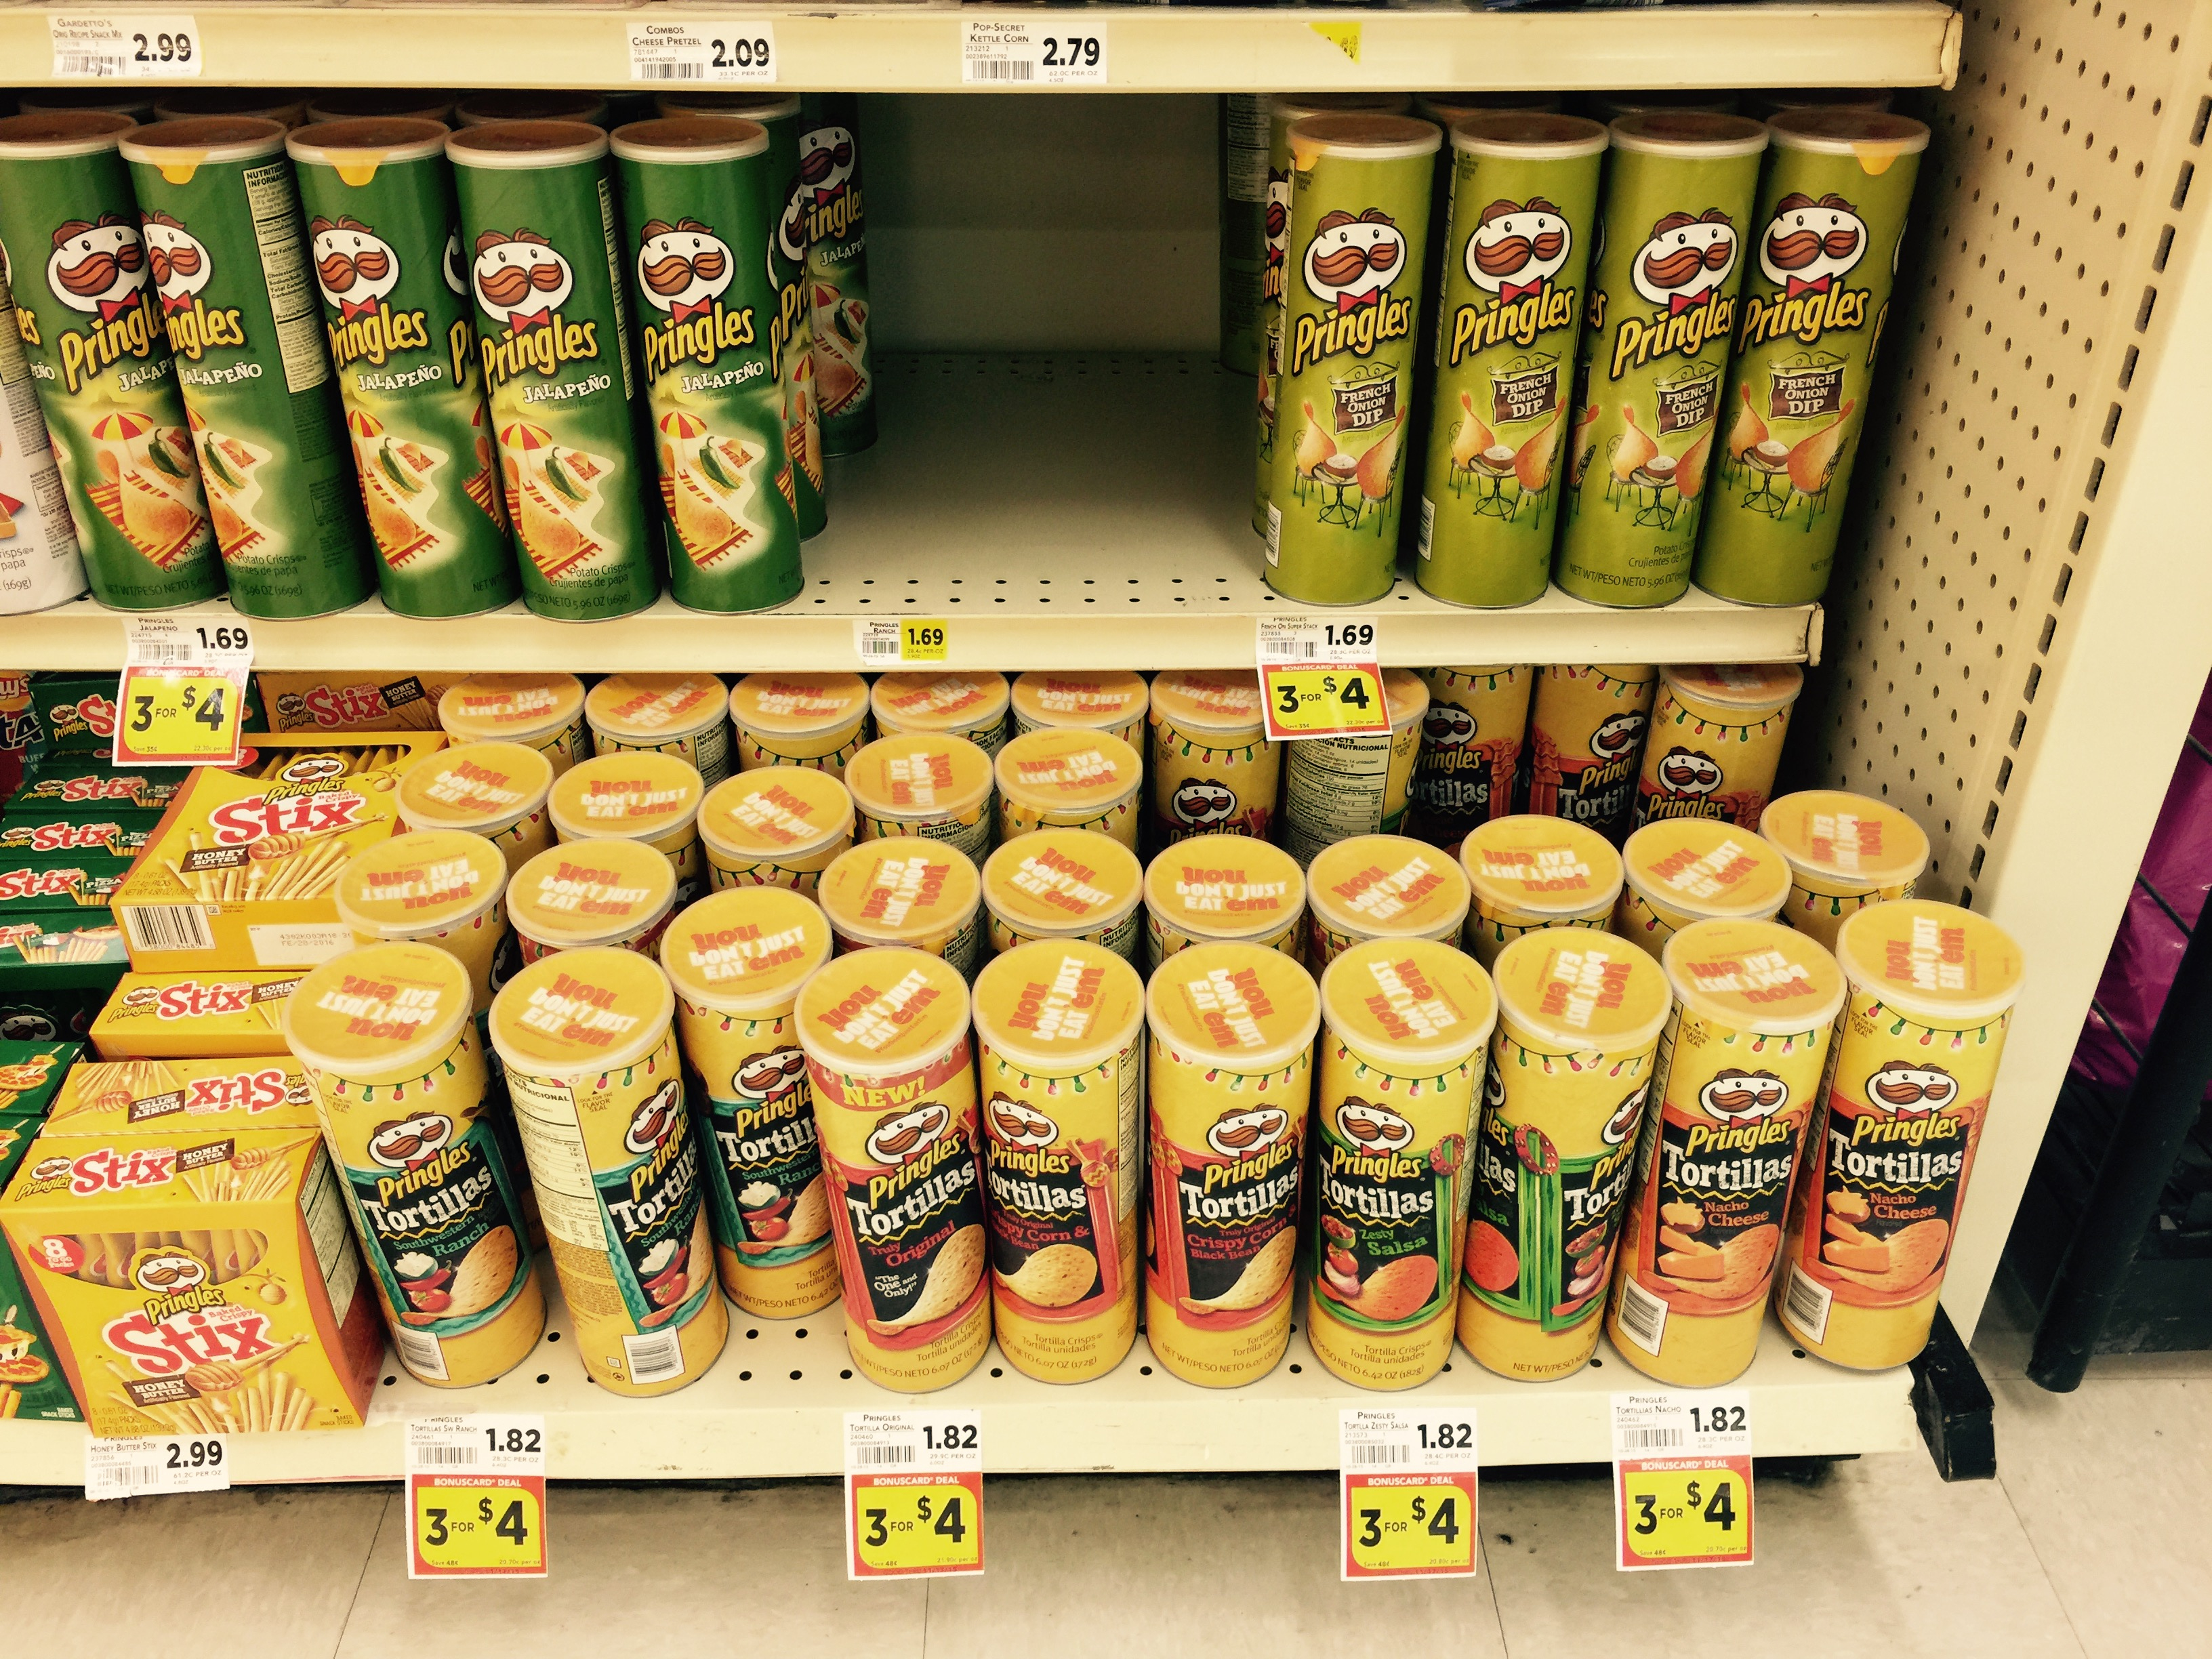 Rare Buy One Get One Free Pringles Coupon - The Harris Teeter Deals - Free Printable Pringles Coupons